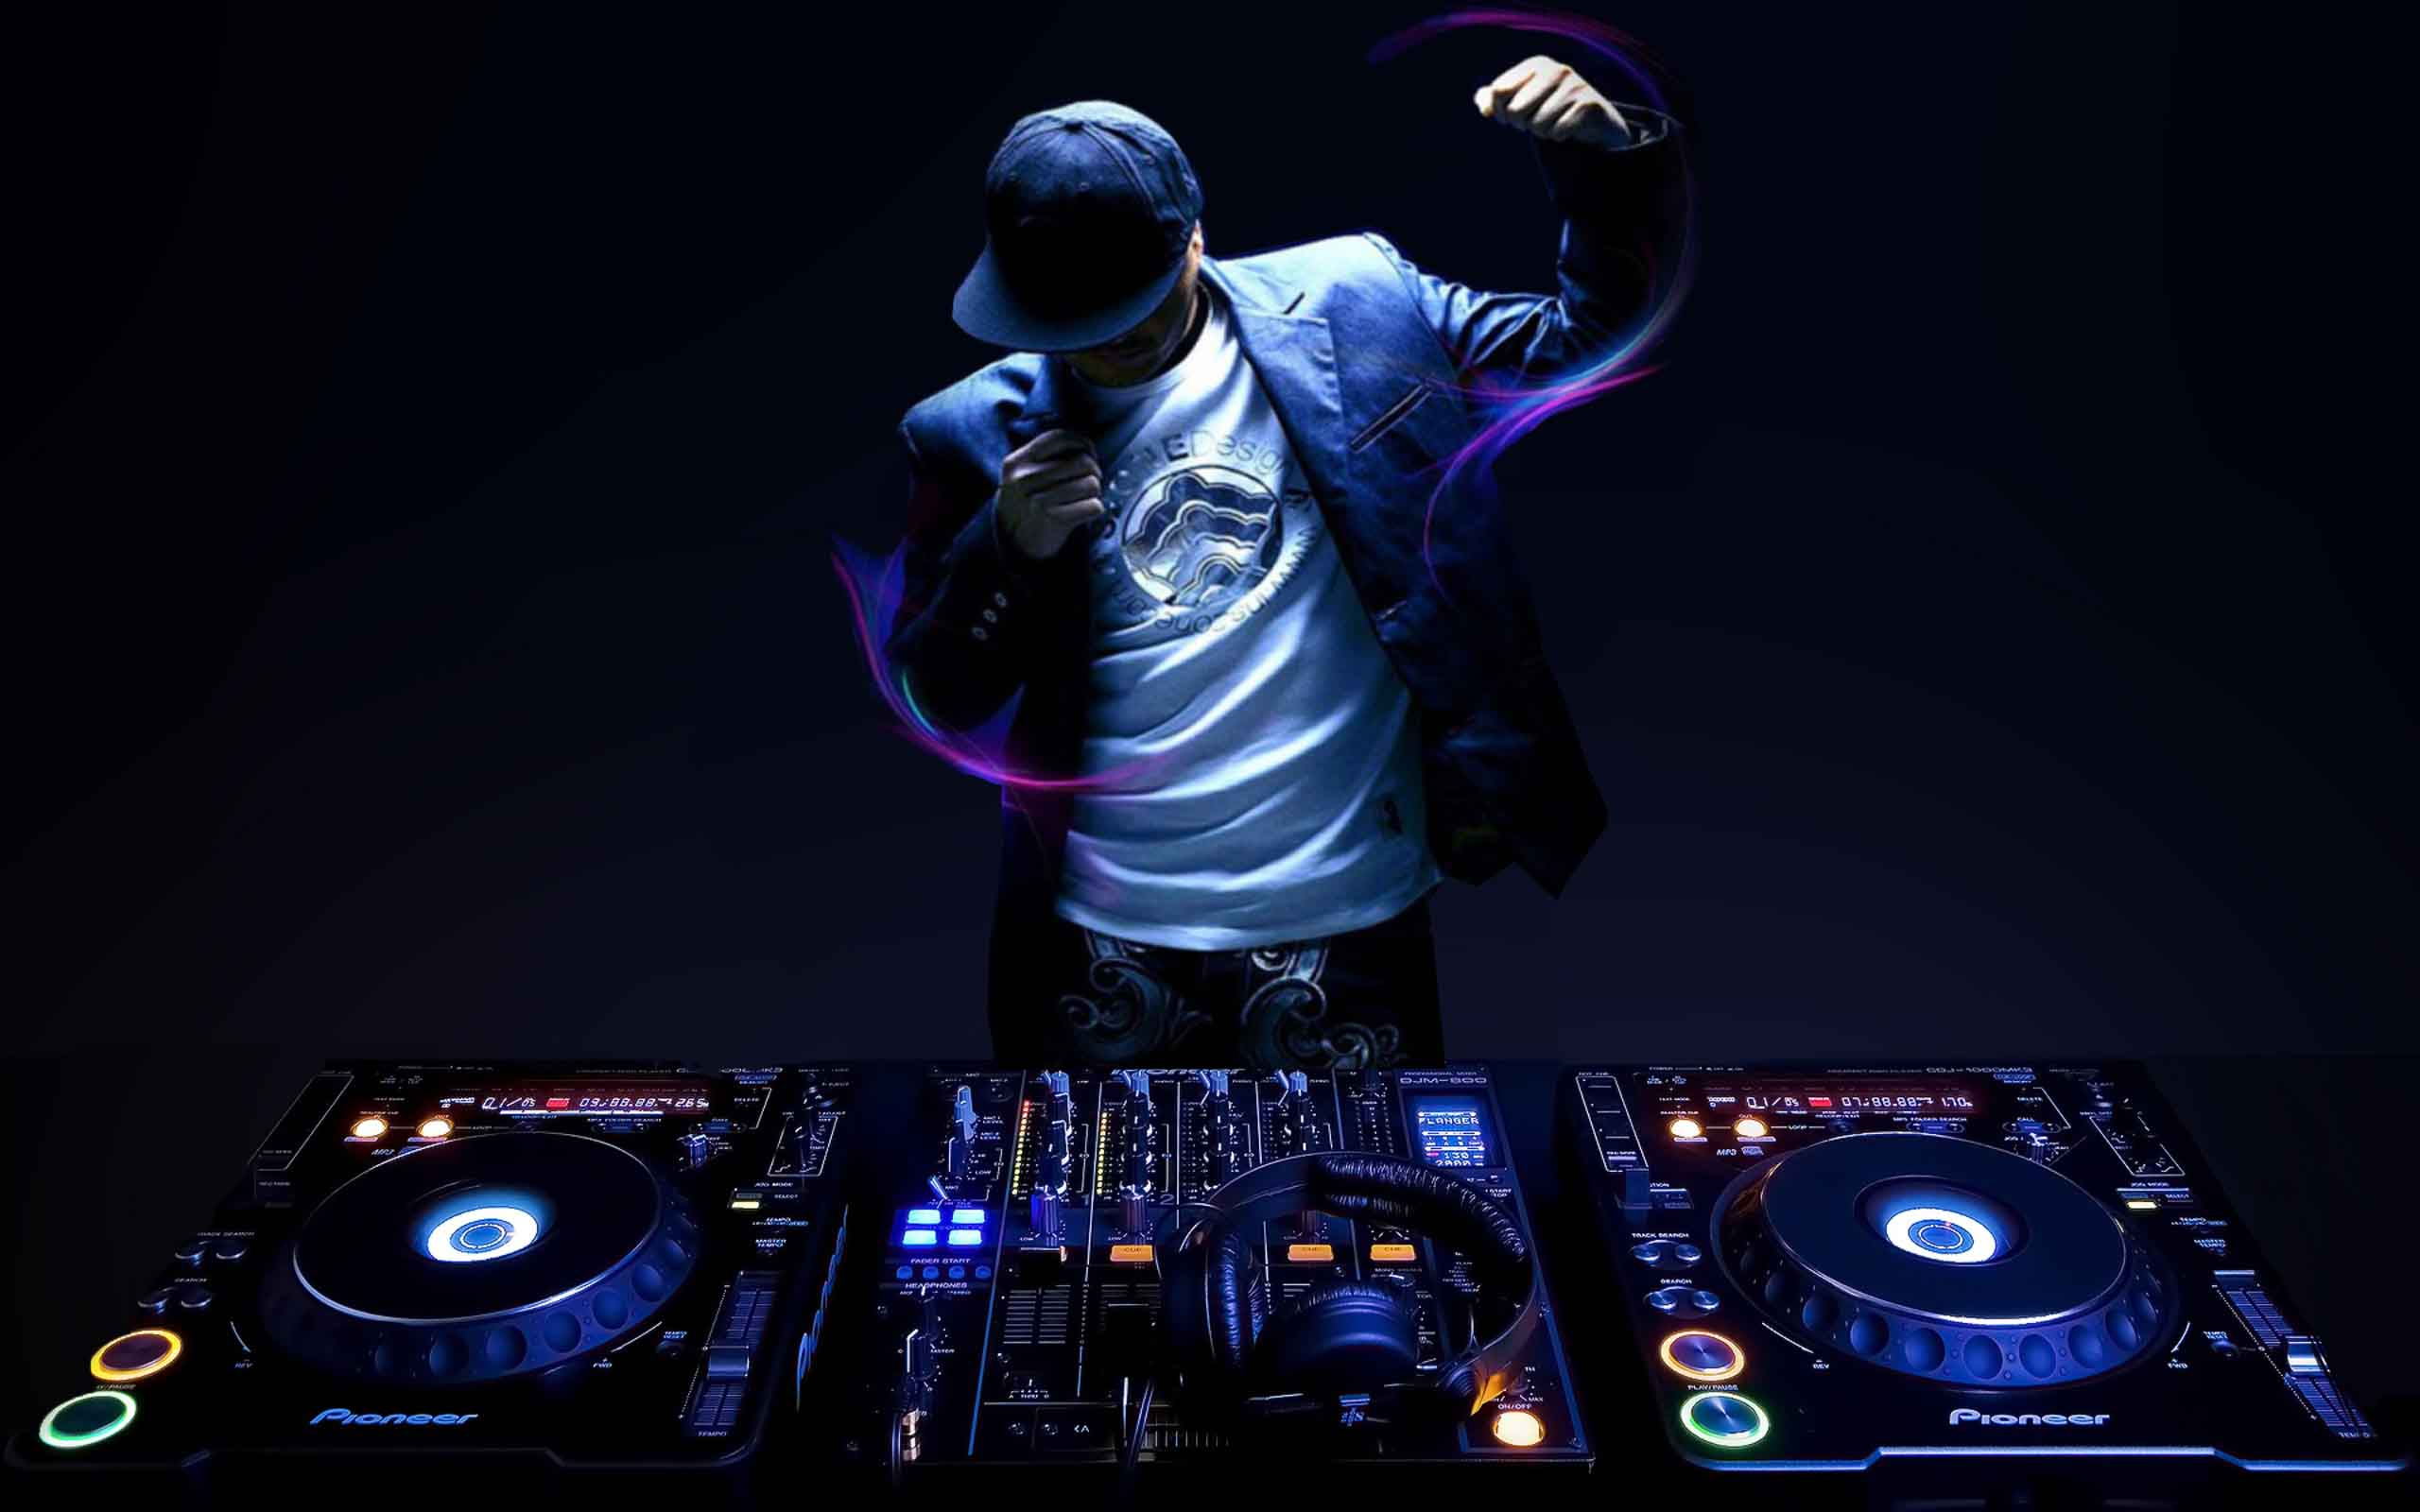 Dj Music Latest Hd Wallpapers Free Download Hd Free Wallpapers